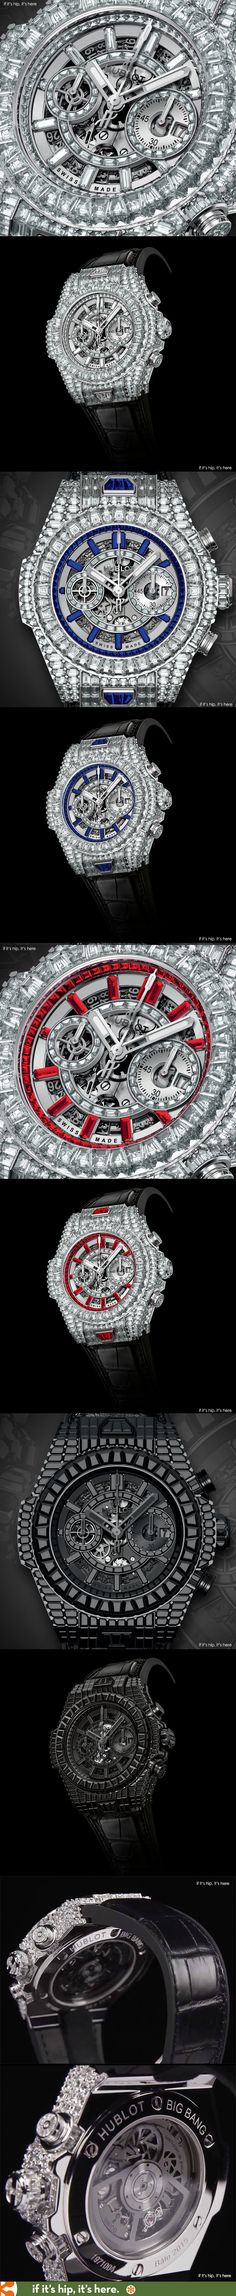 Hublot Introduces 10 new diamond watches, each priced at $1,000,000 to celebrate the 10th Anniversary of their Big Bang Watch. | http://www.ifitshipitshere.com/hublot-big-bang-anniversary-models/